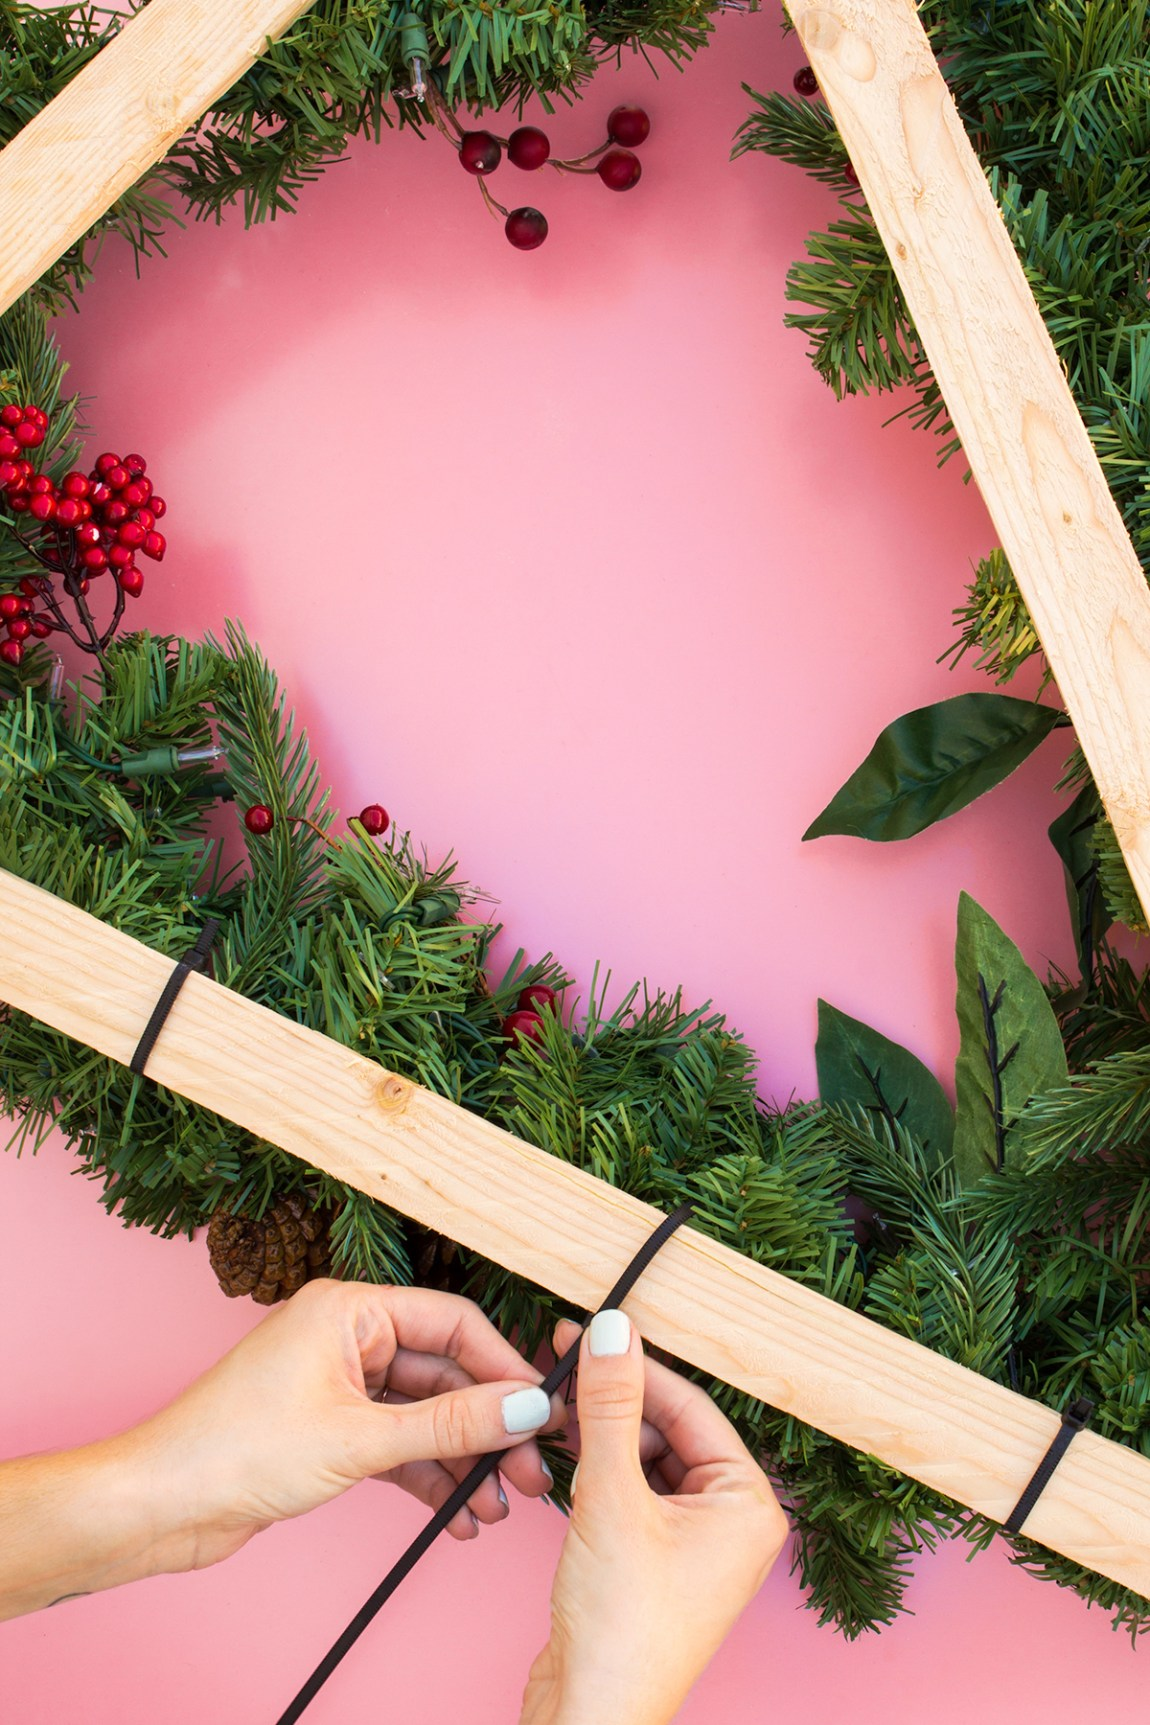 Learn how to create a tree shaped wreath that's perfect for decorating your front door this holiday season!